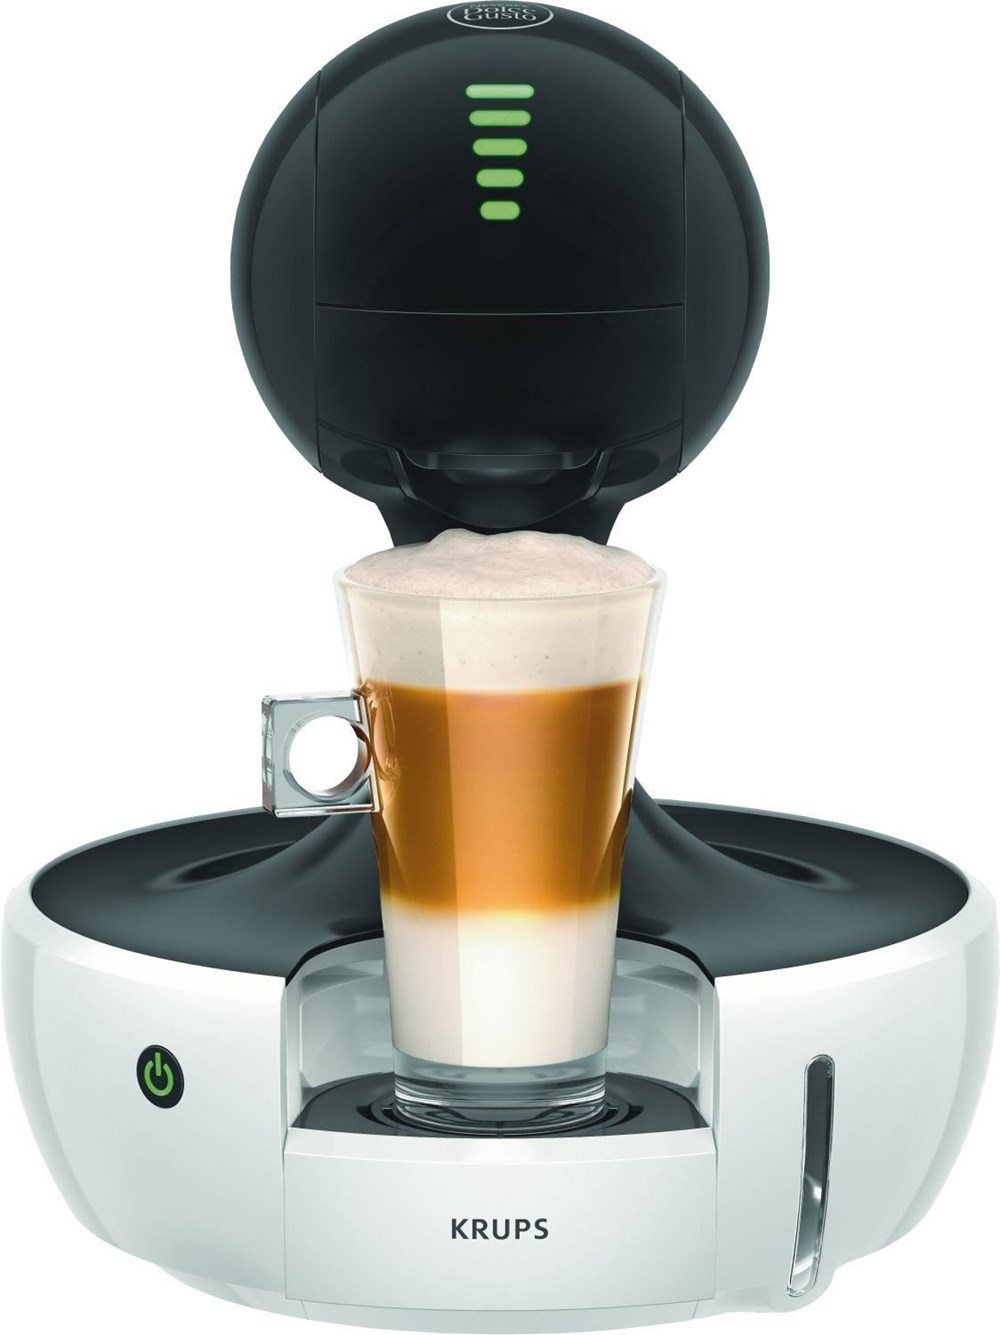 krups kp3501 dolce gusto drop wei schwarz coffee pod capsule machines computeruniverse. Black Bedroom Furniture Sets. Home Design Ideas